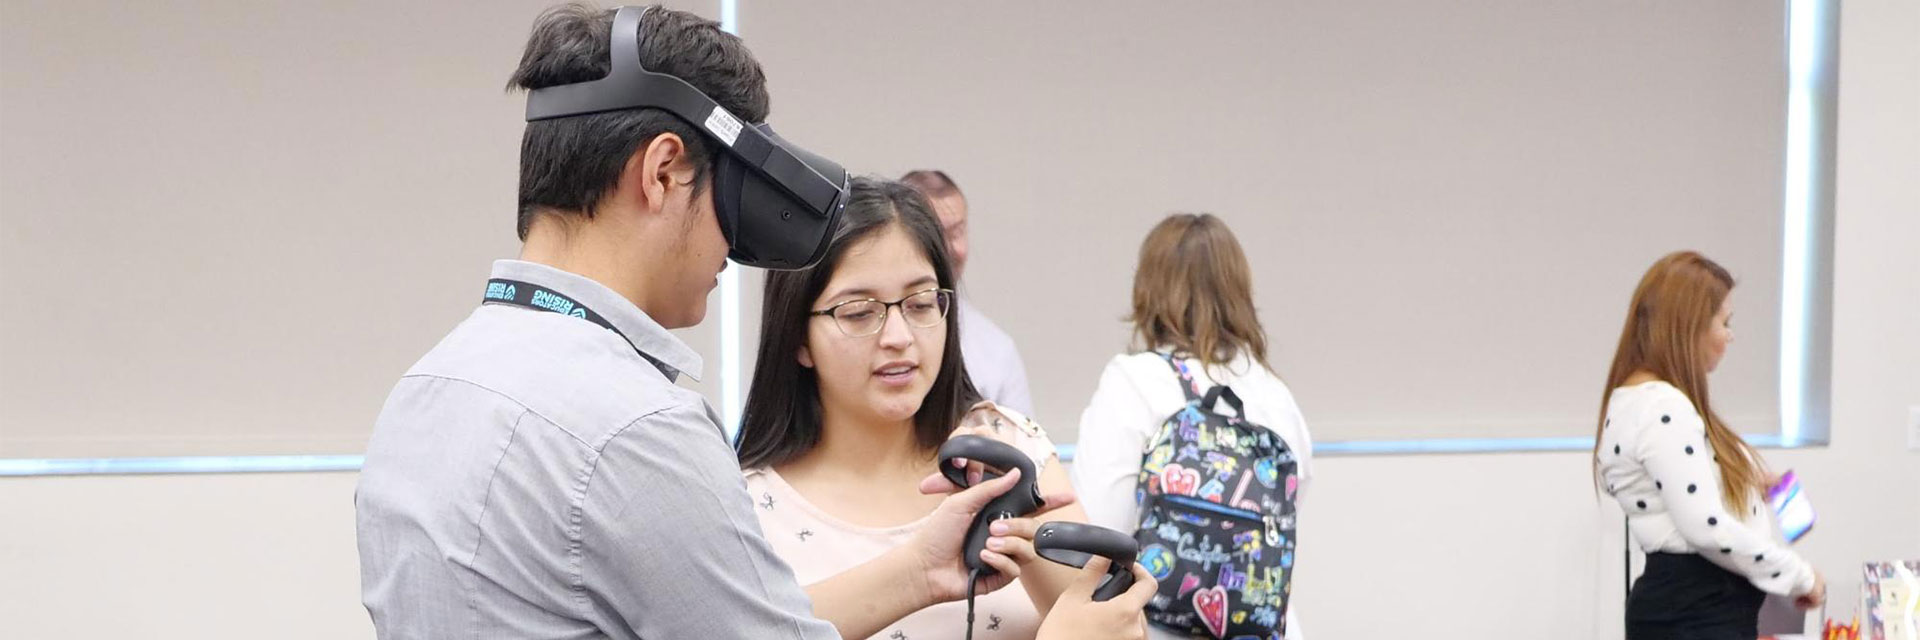 Visitors to the Ed Rising event try out a VR headset.